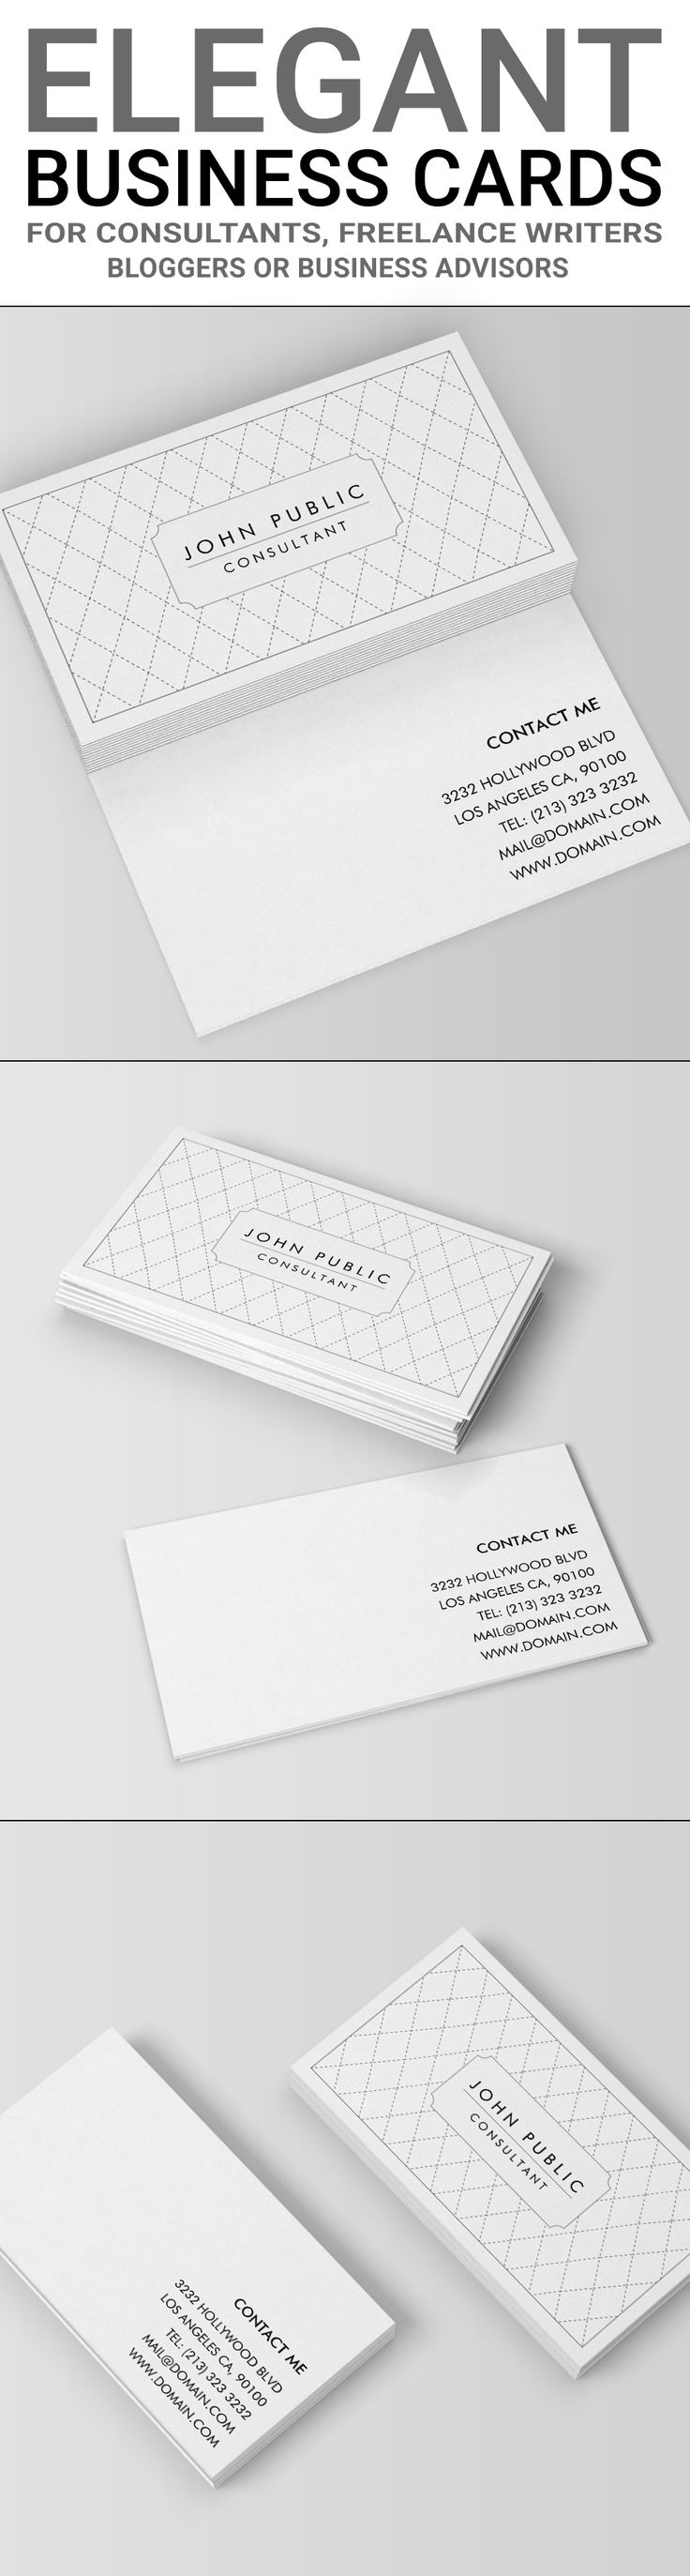 "Elegant Black and White Business Cards | It shows crossing lines of thin dark stitches forming a diamond pattern. The black and white design is two sided and set up on the standard business card size of 3.5"" x 2"". Ideal for small businesses such as consulting firms or business advisors, this elegant pattern design will suit an individual as well and work perfectly as a personal business card. Black and white is an elegant choice and it never goes out of style. This is an online template."